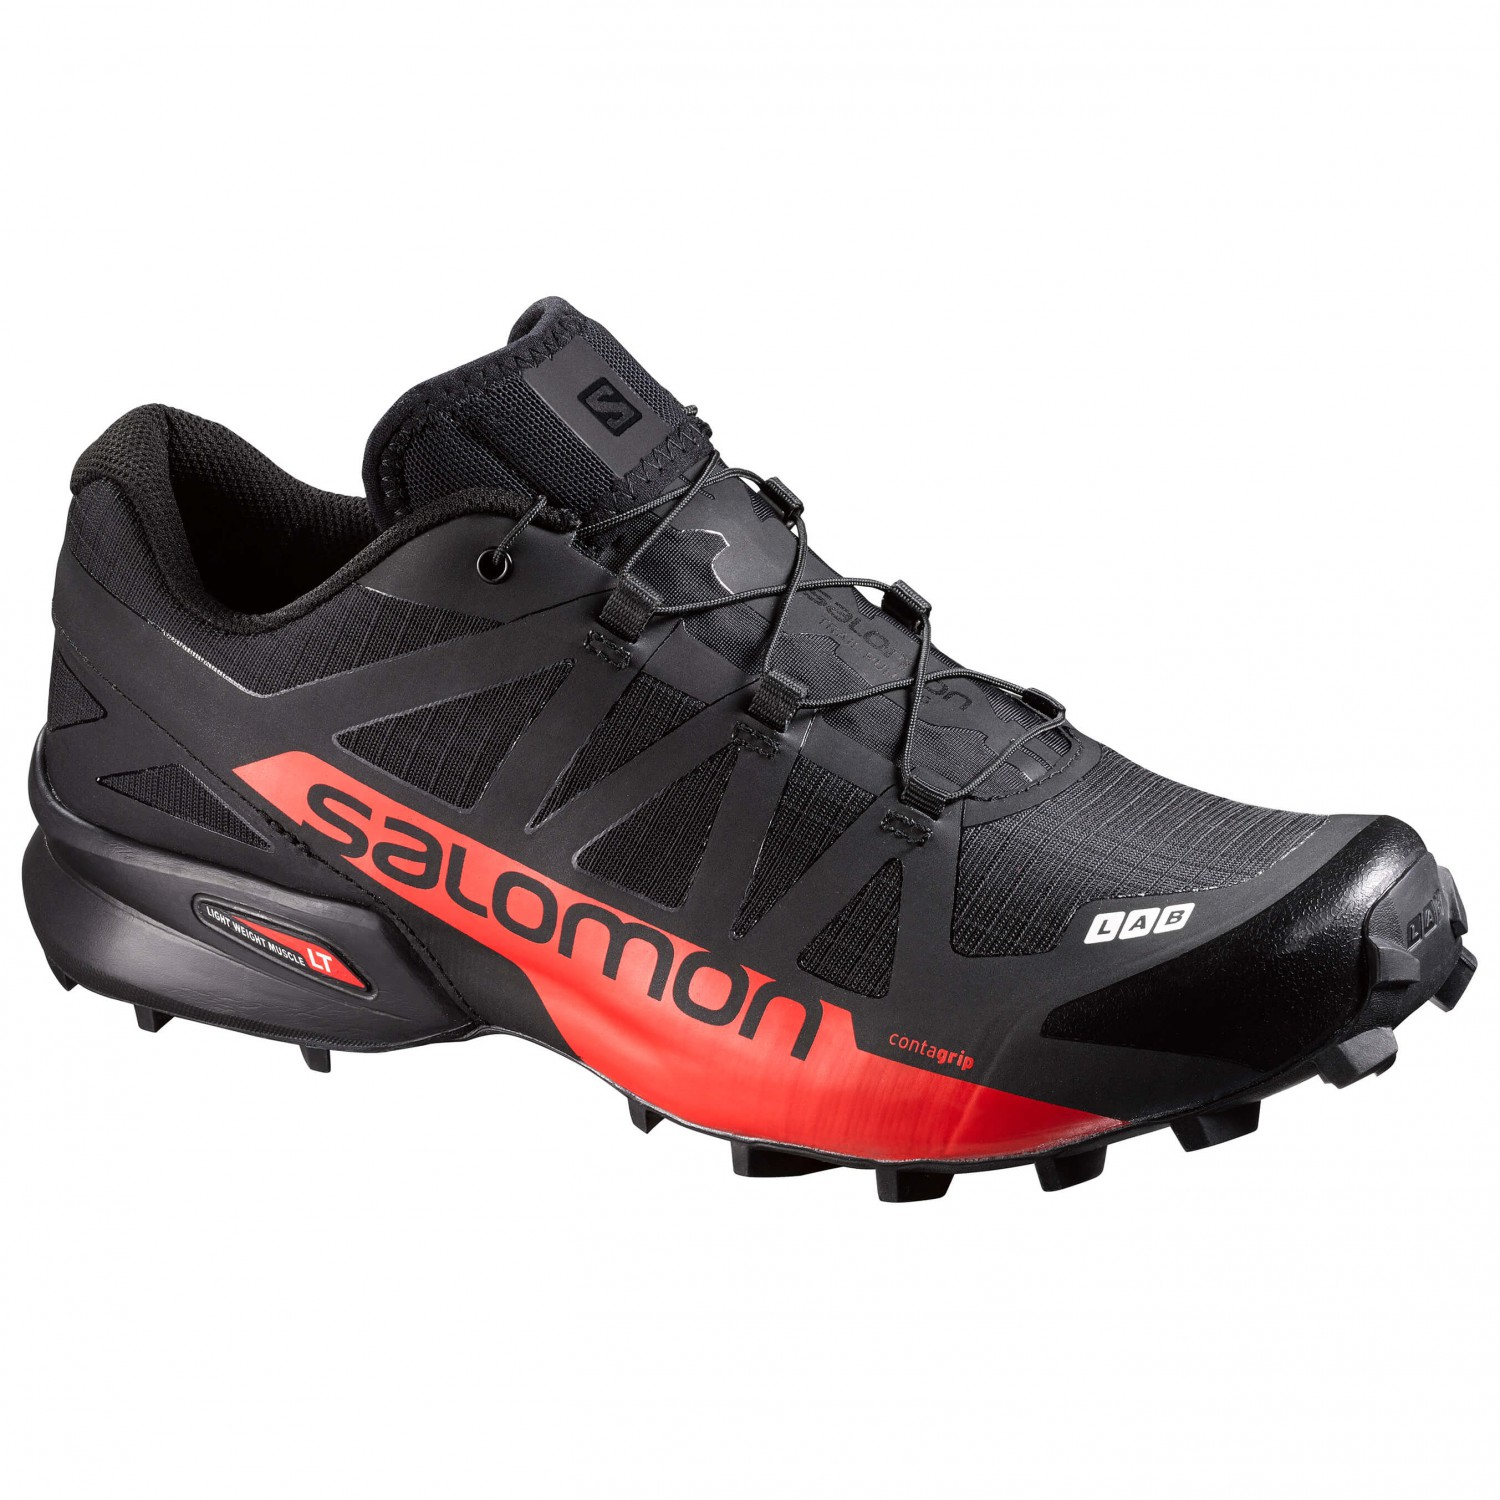 meilleur site web fcc3d bf1ca Salomon - S-Lab Speedcross - Trail running shoes - Black / Racing Red | 3,5  (UK)